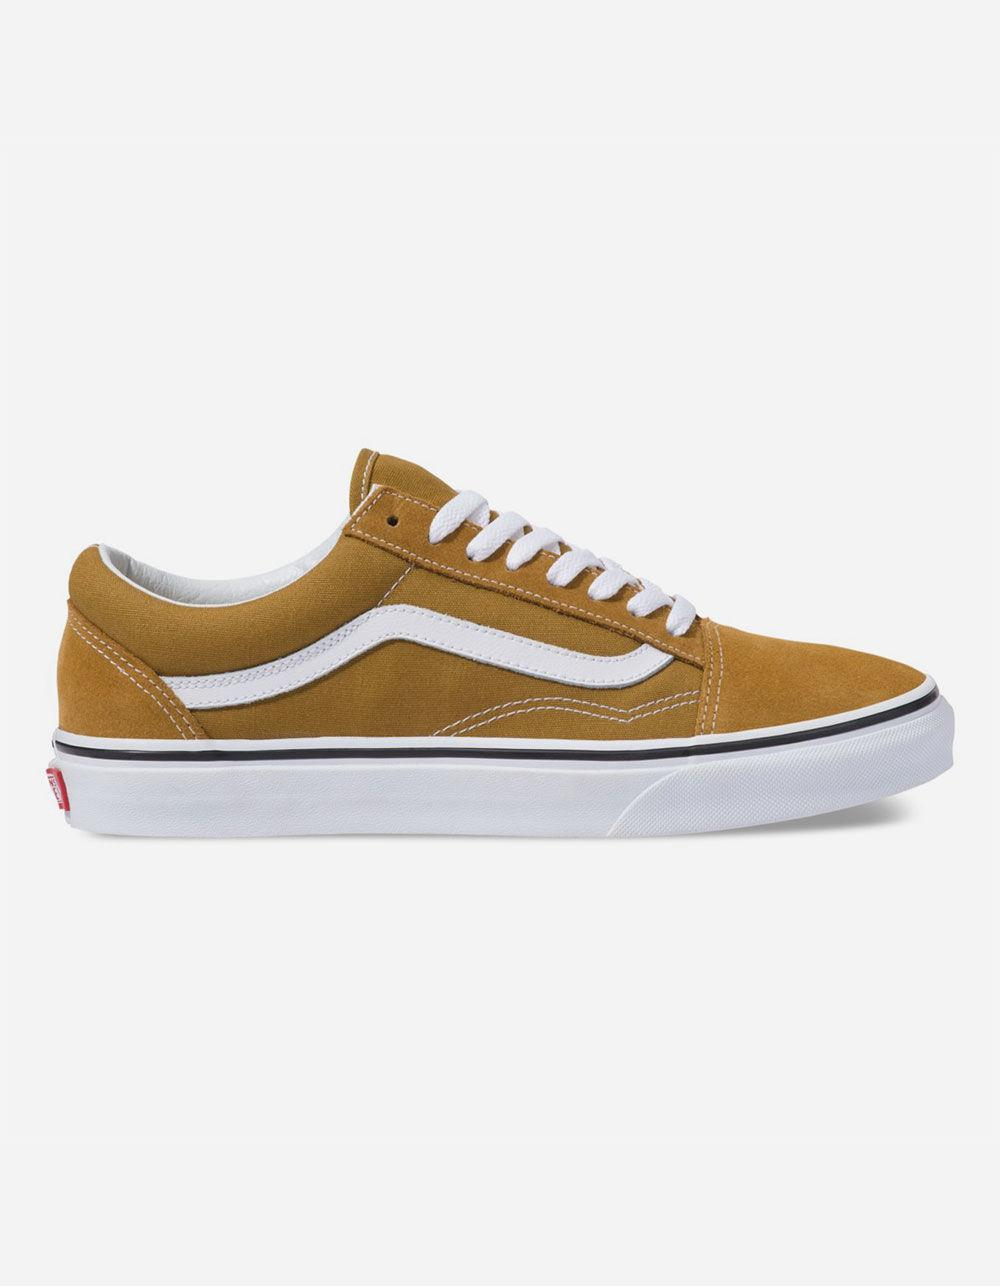 Lyst - Vans Old Skool Cumin   True White Shoes in White 27a5acb84